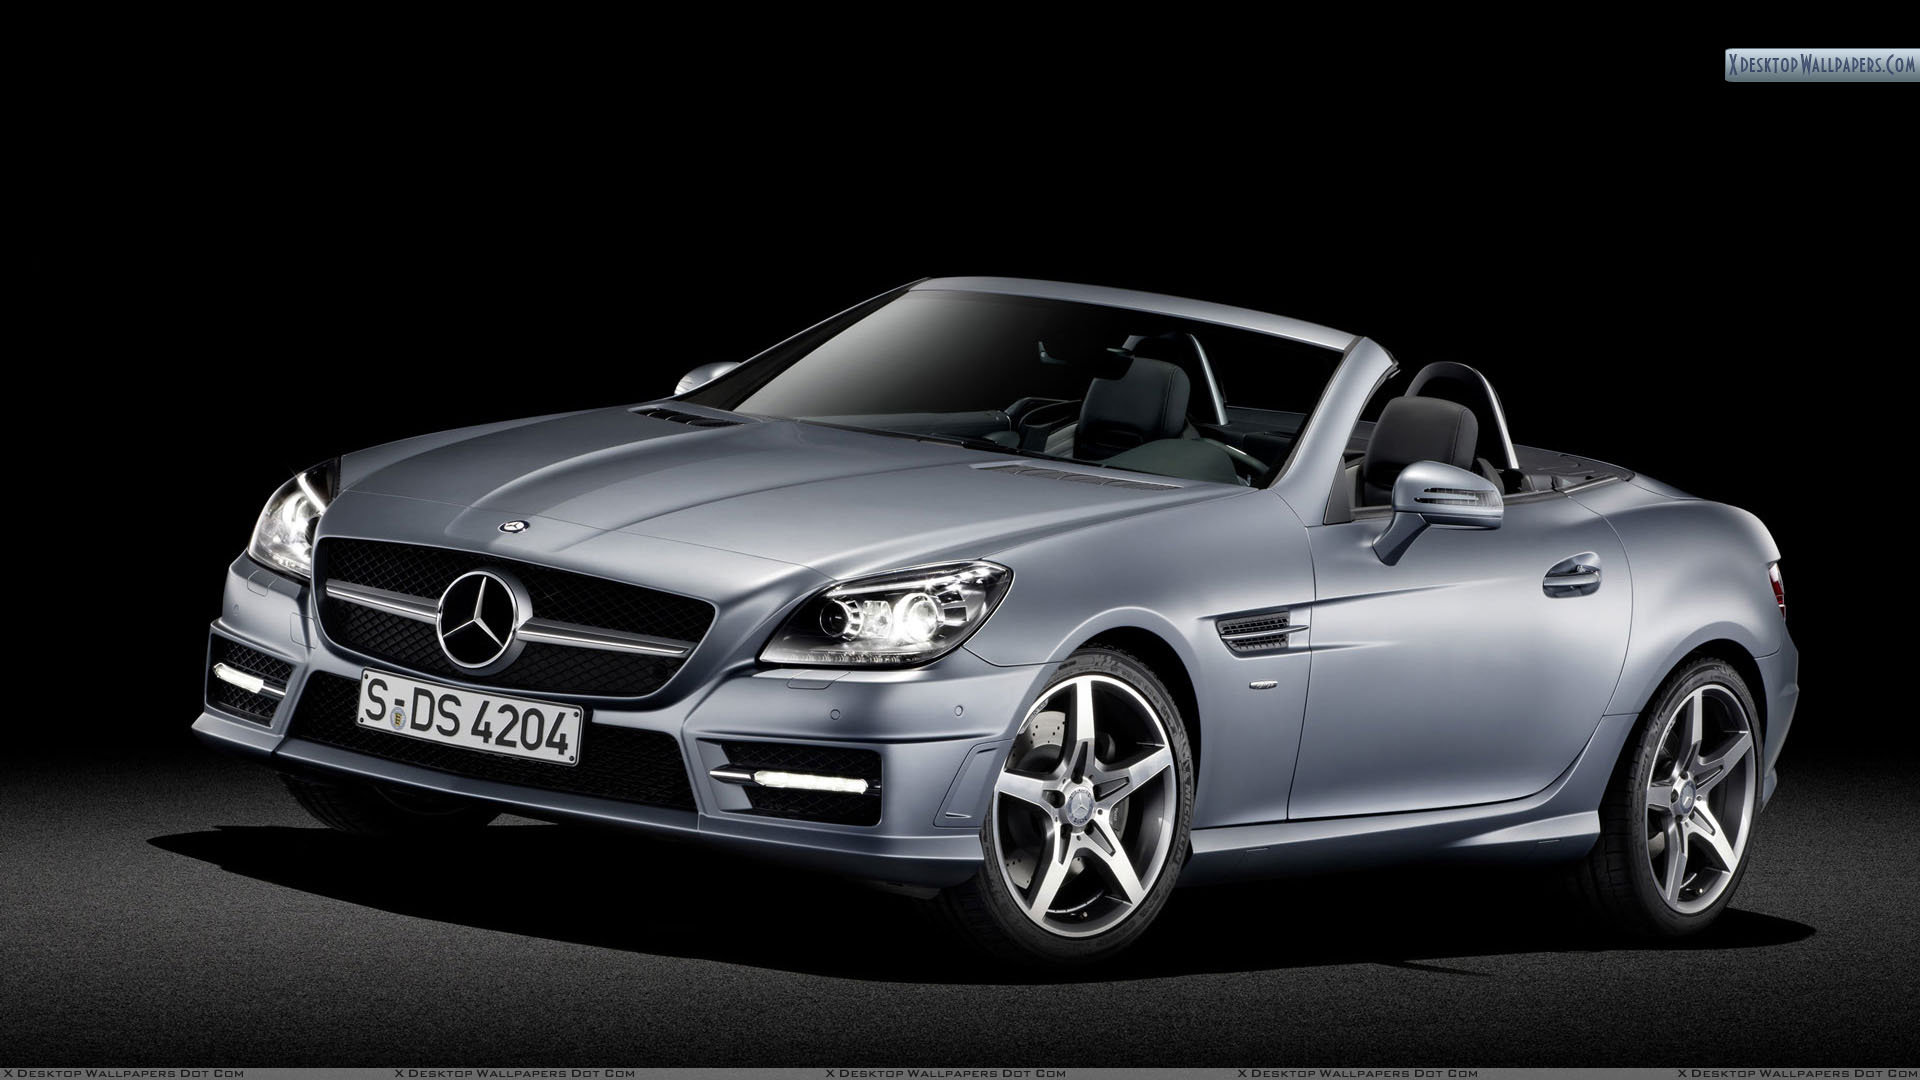 Front side view of silver mercedes benz slk 350 wallpaper